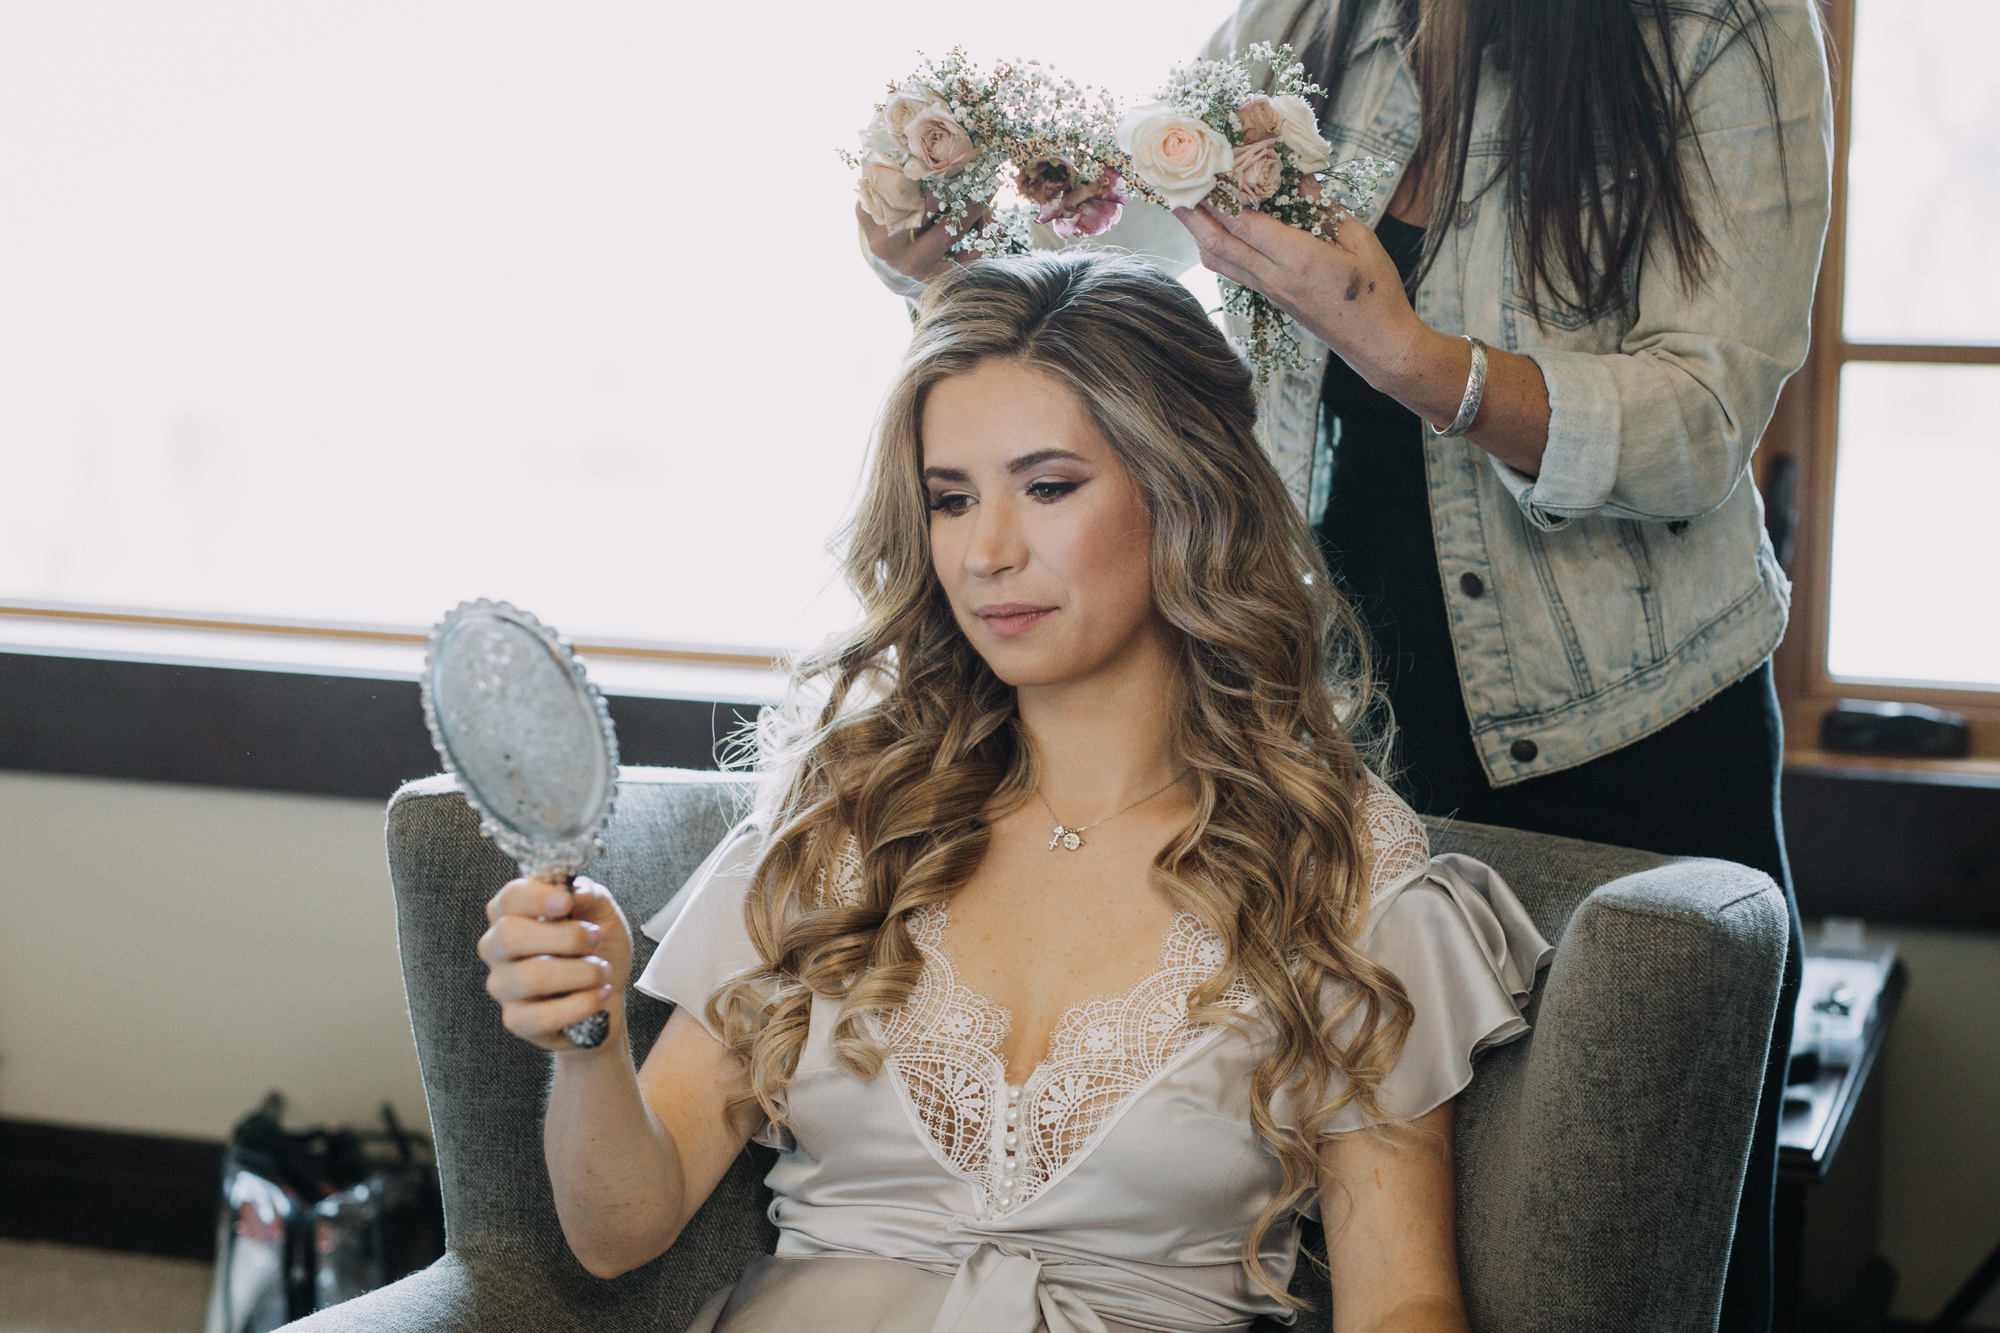 Bride trying on her floral while getting ready for her big day